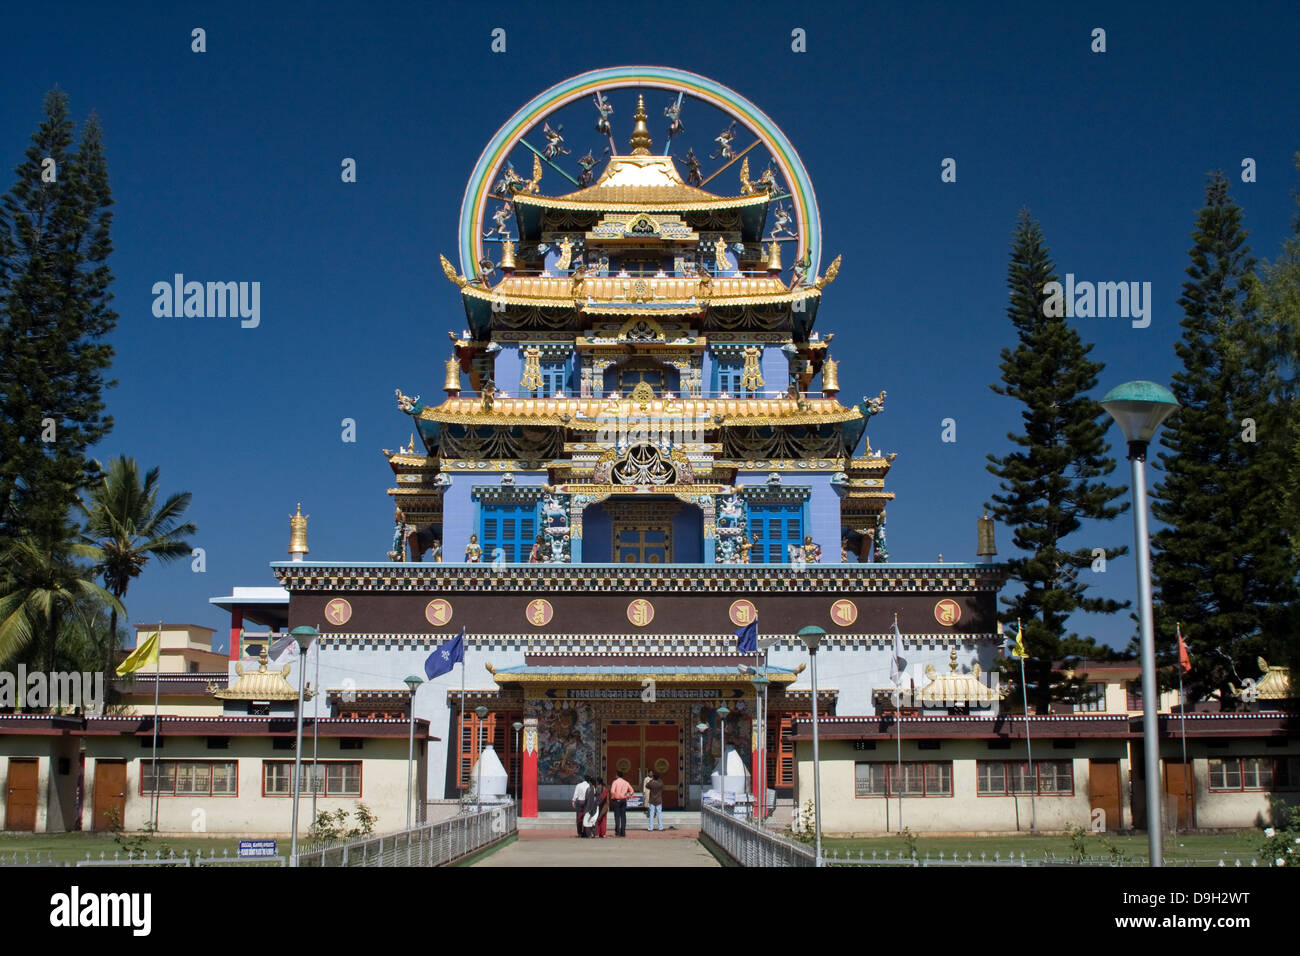 Asia, India, Karnataka, Bylakuppe, Golden Temple - Stock Image